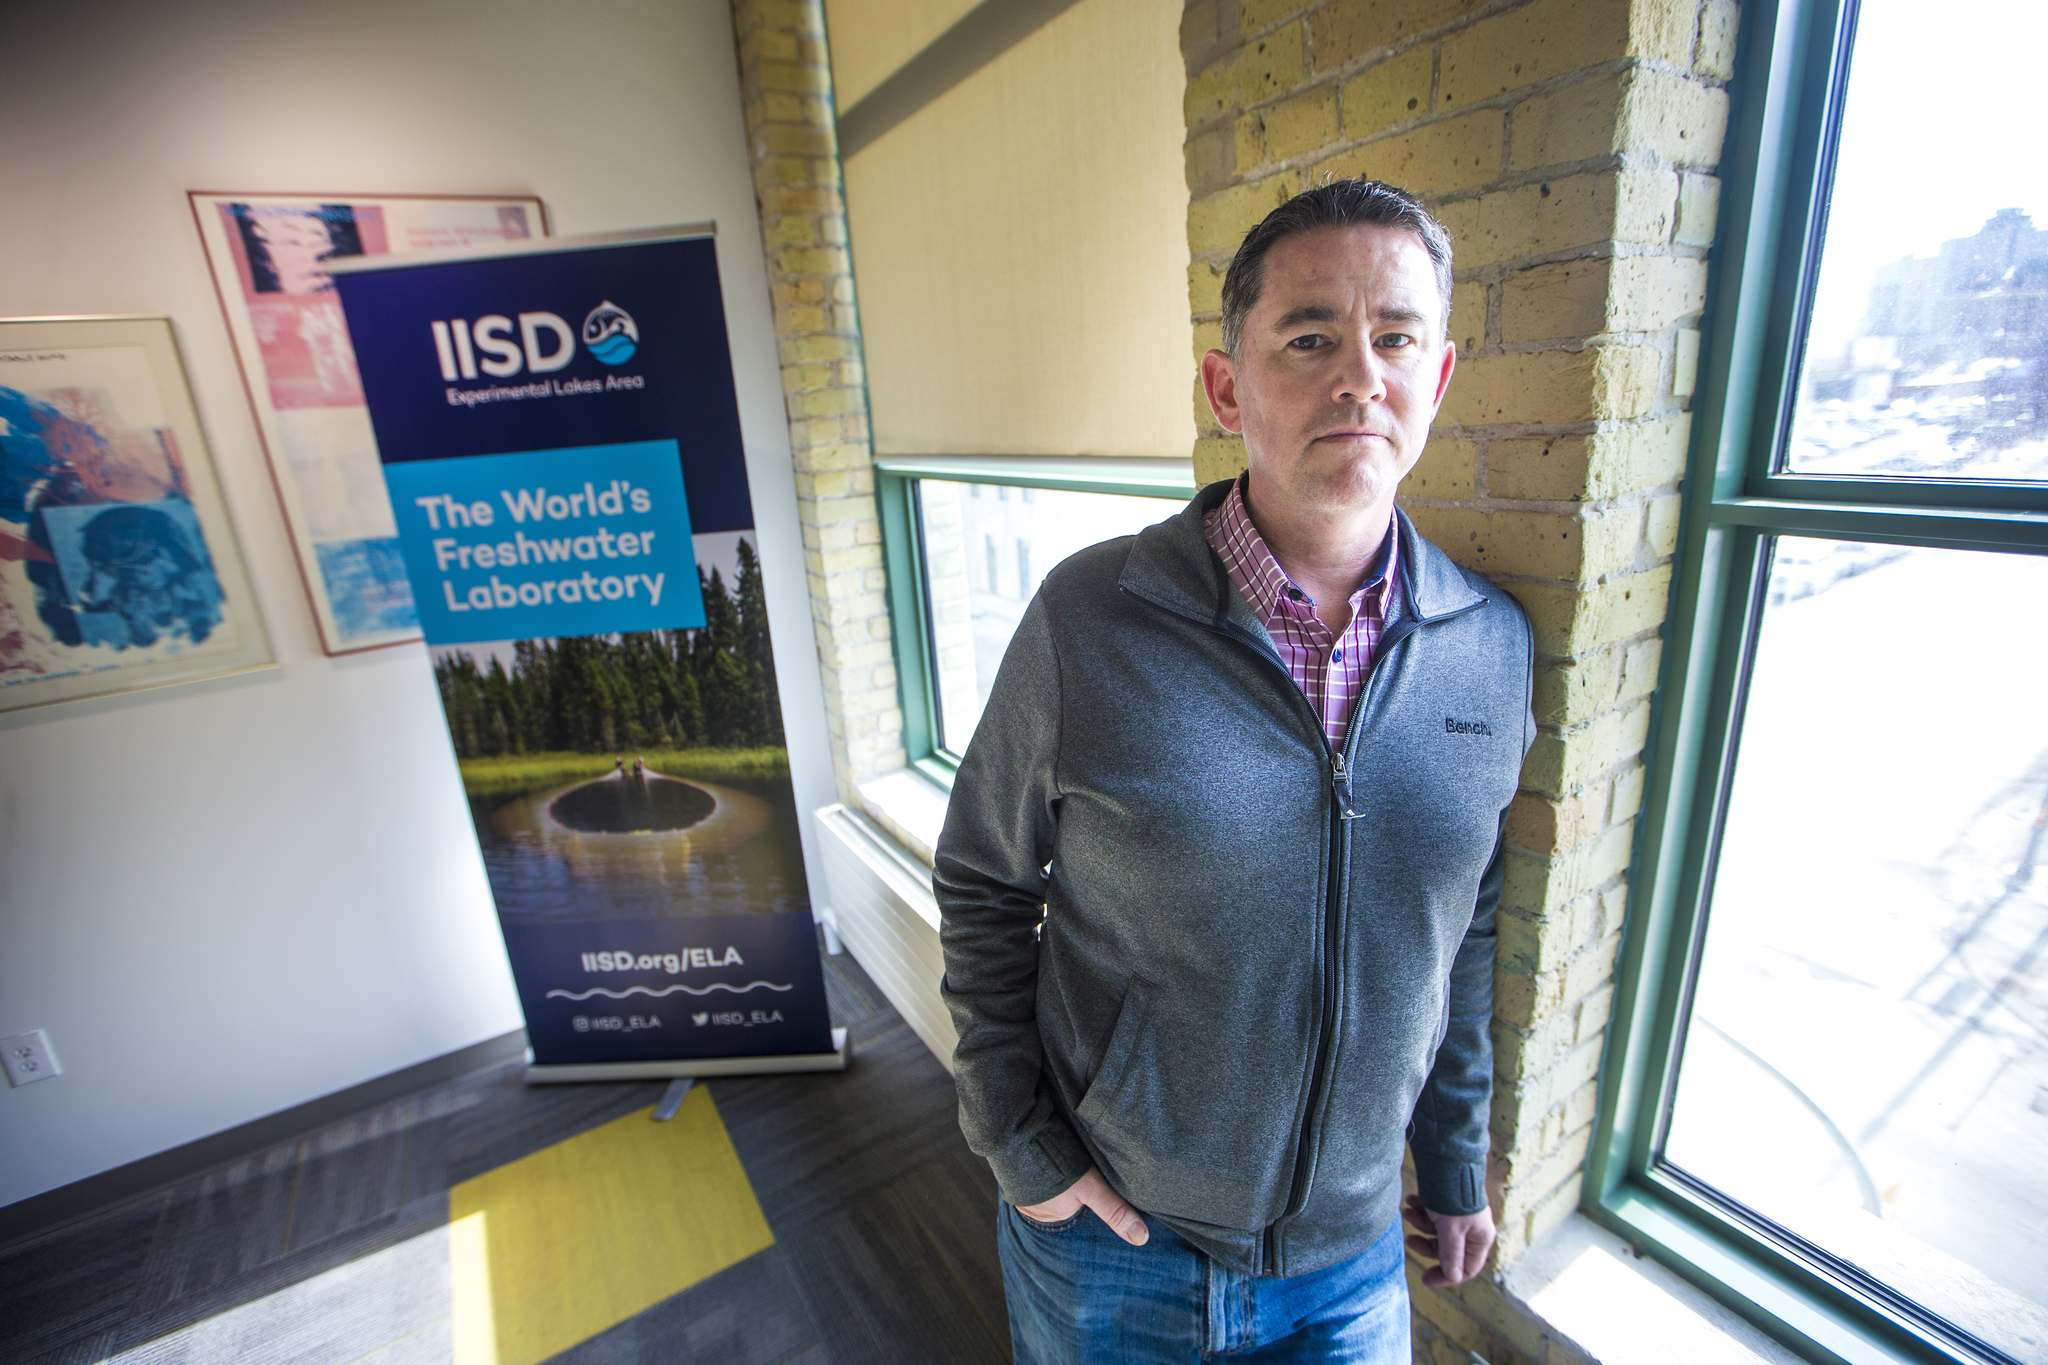 Scott Higgins, research scientist at the IISD Experimental Lakes Area Inc, poses for a portrait in his office in Winnipeg. (Mikaela MacKenzie / Winnipeg Free Press)